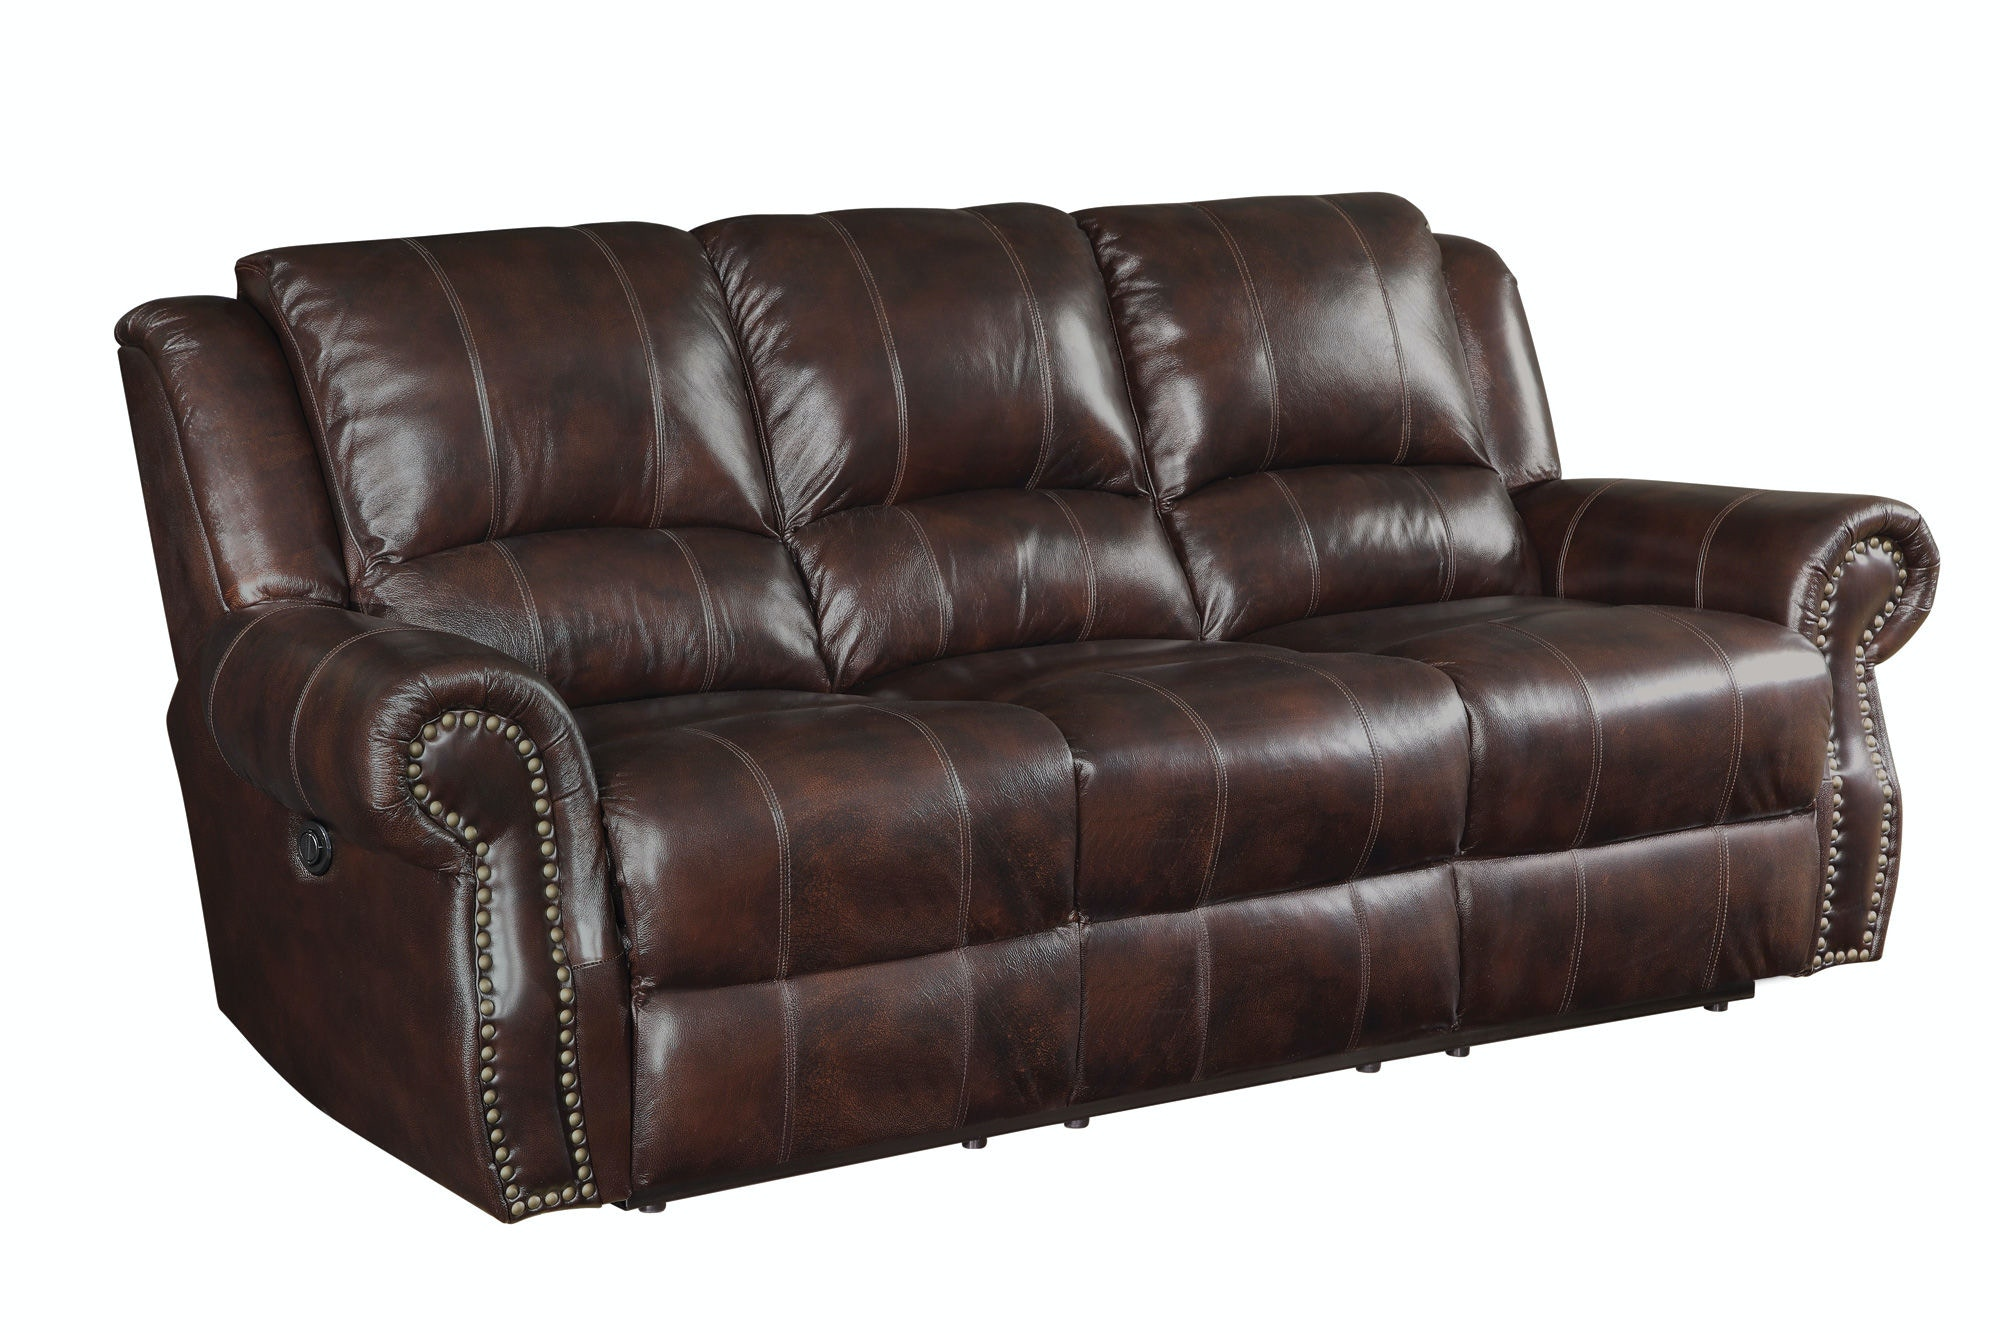 Coaster Motion Sofa 650161 · Coaster Motion Sofa 650161